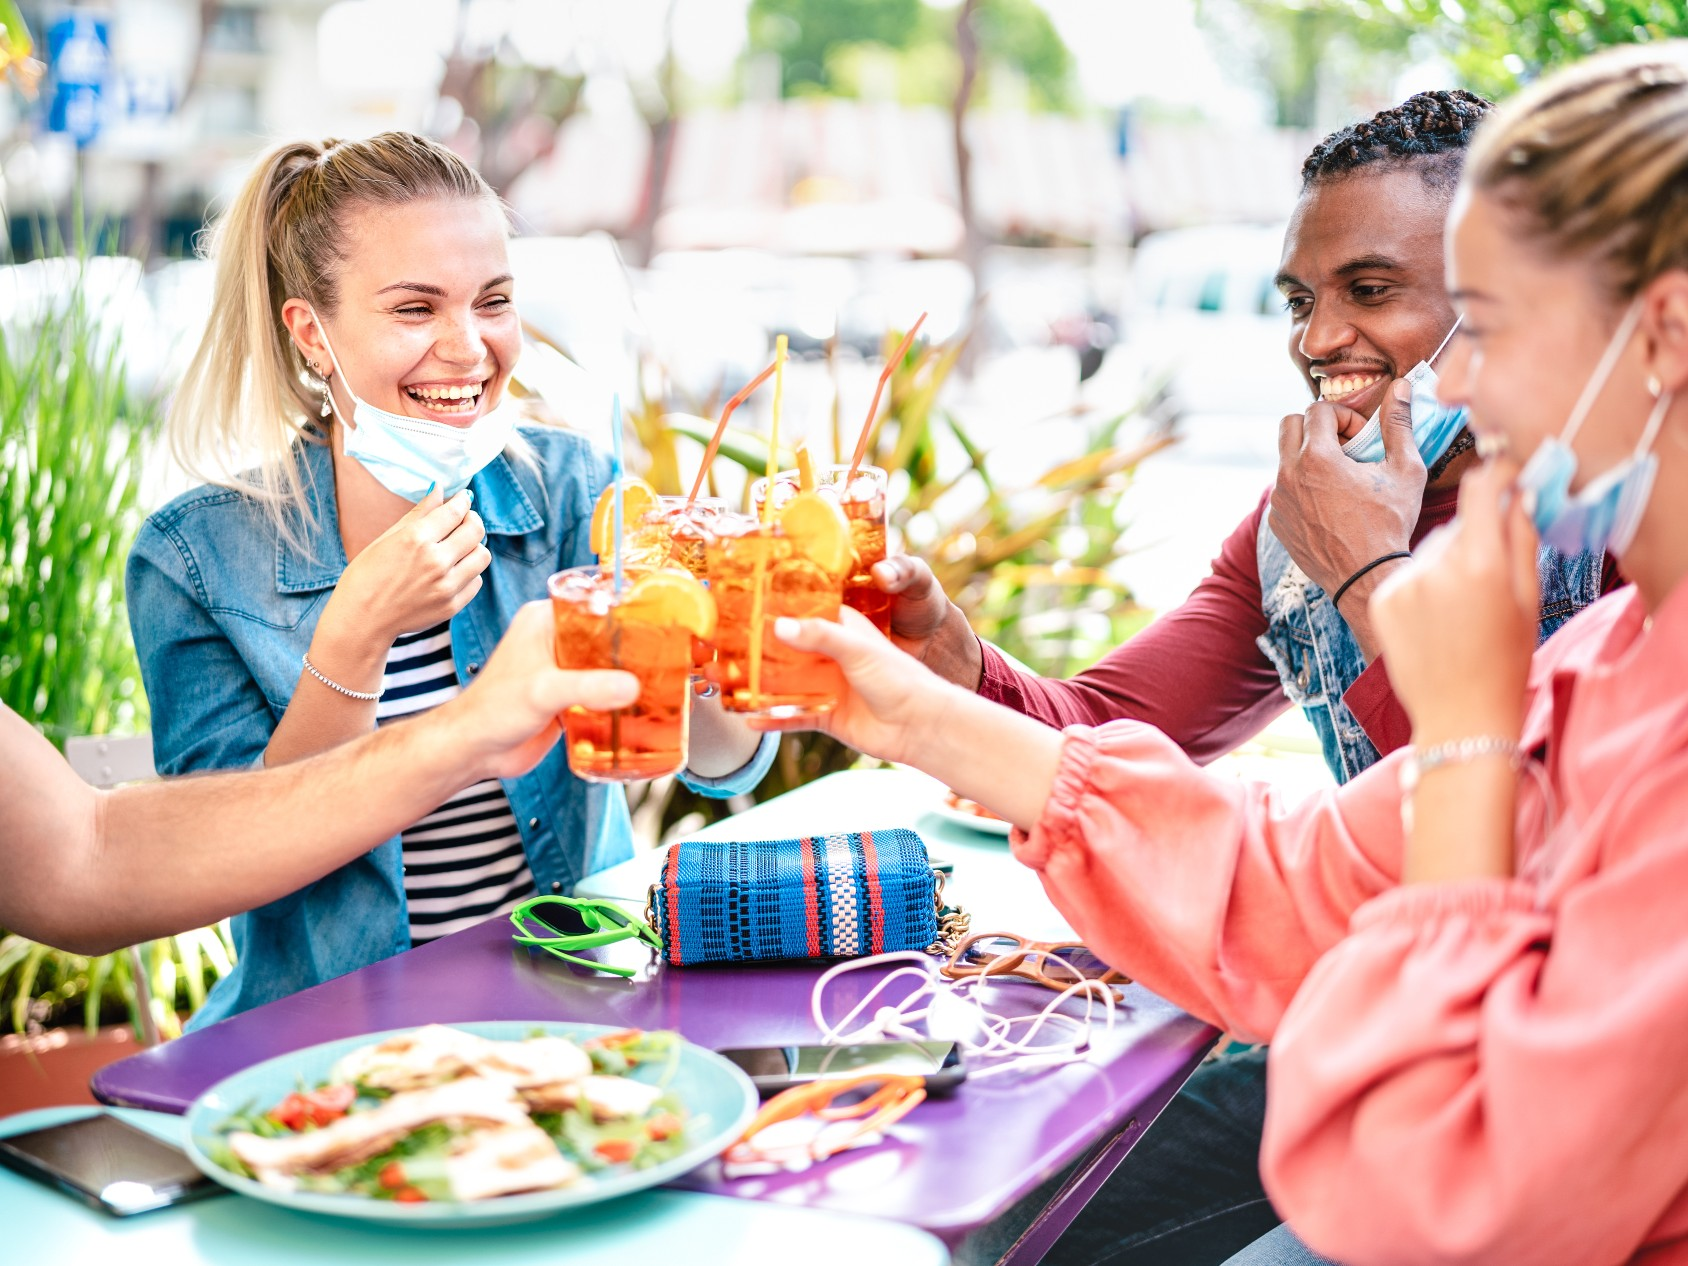 An image of diners during the pandemic eating outdoors to represent the importance of hand wipes for restaurants when they reopen, soon.